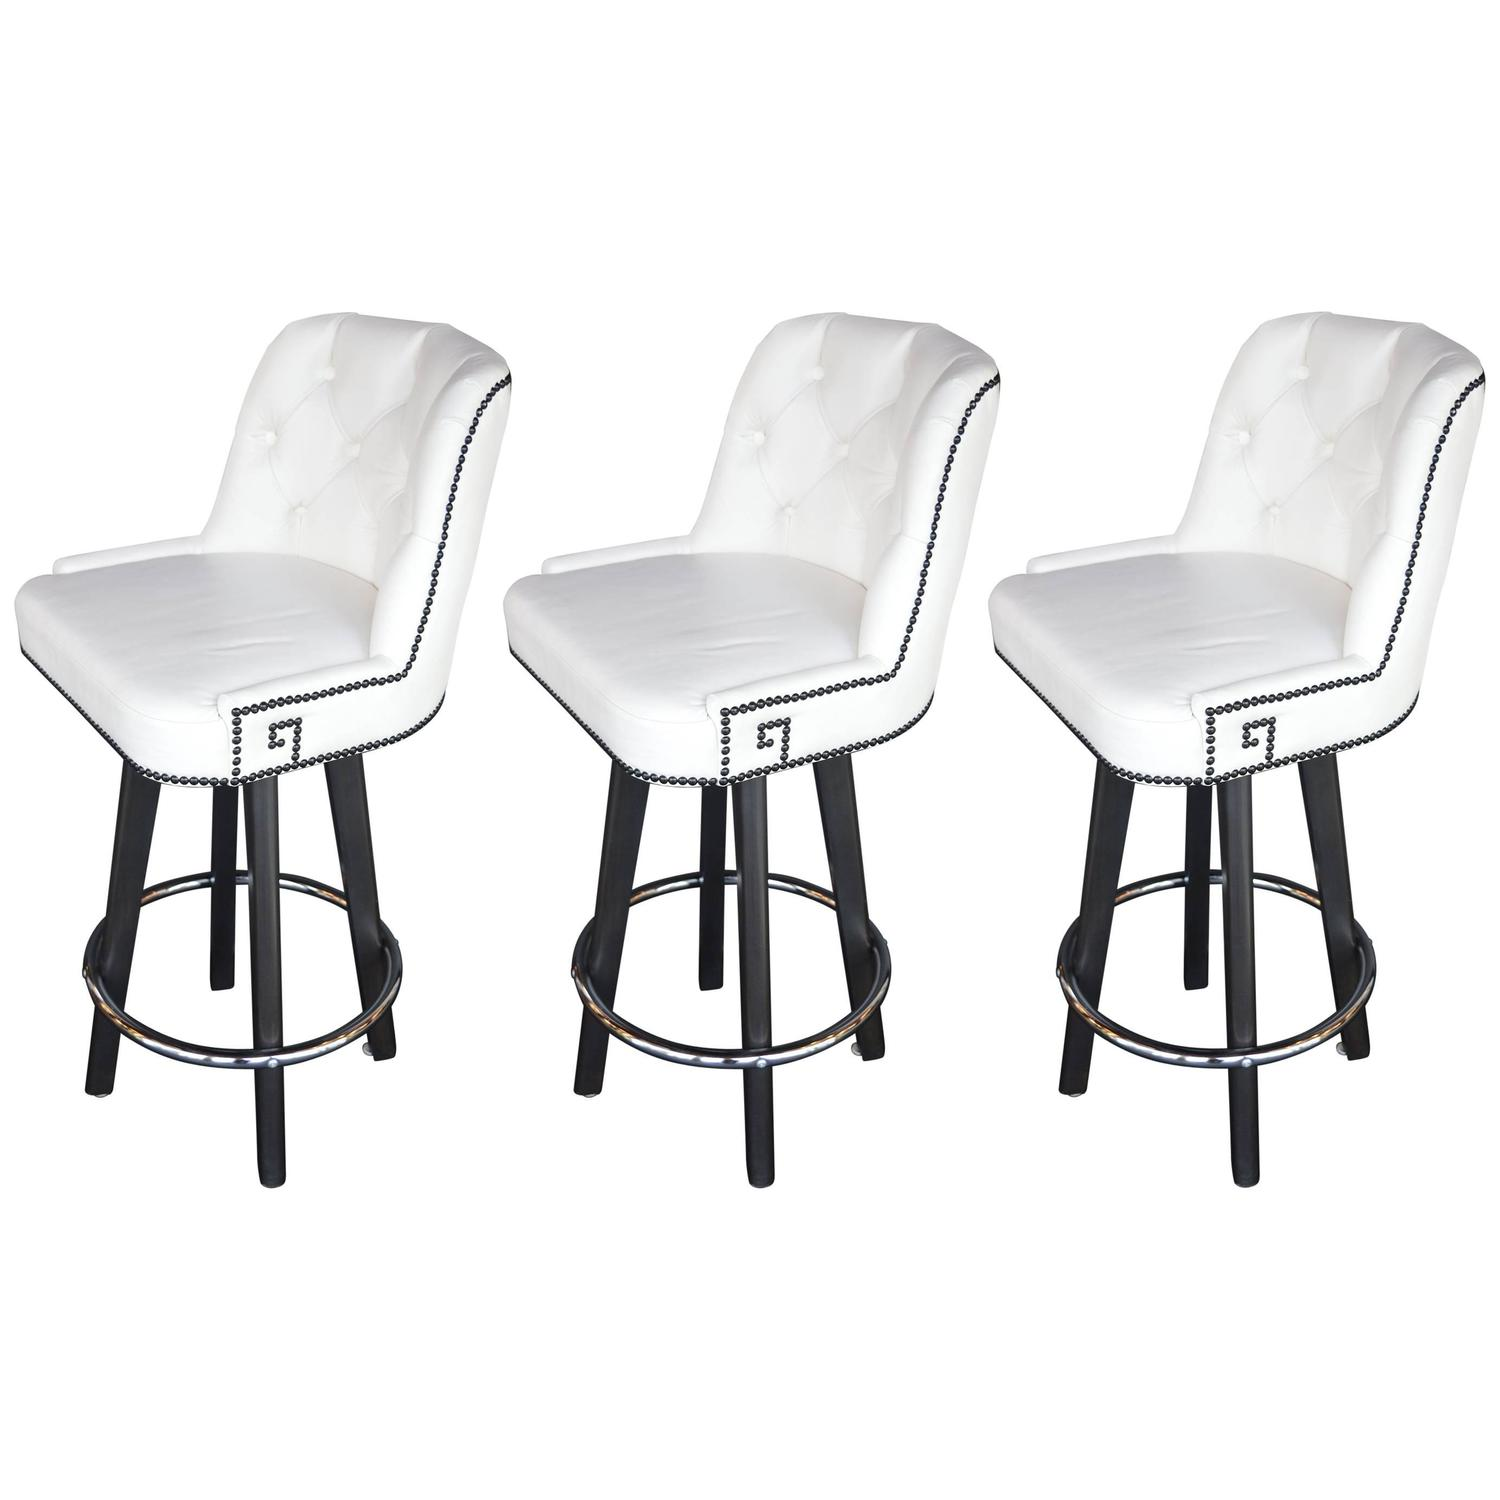 Set of Three White Leather Bar Stools at 1stdibs : 6300963z from www.1stdibs.com size 1500 x 1500 jpeg 83kB